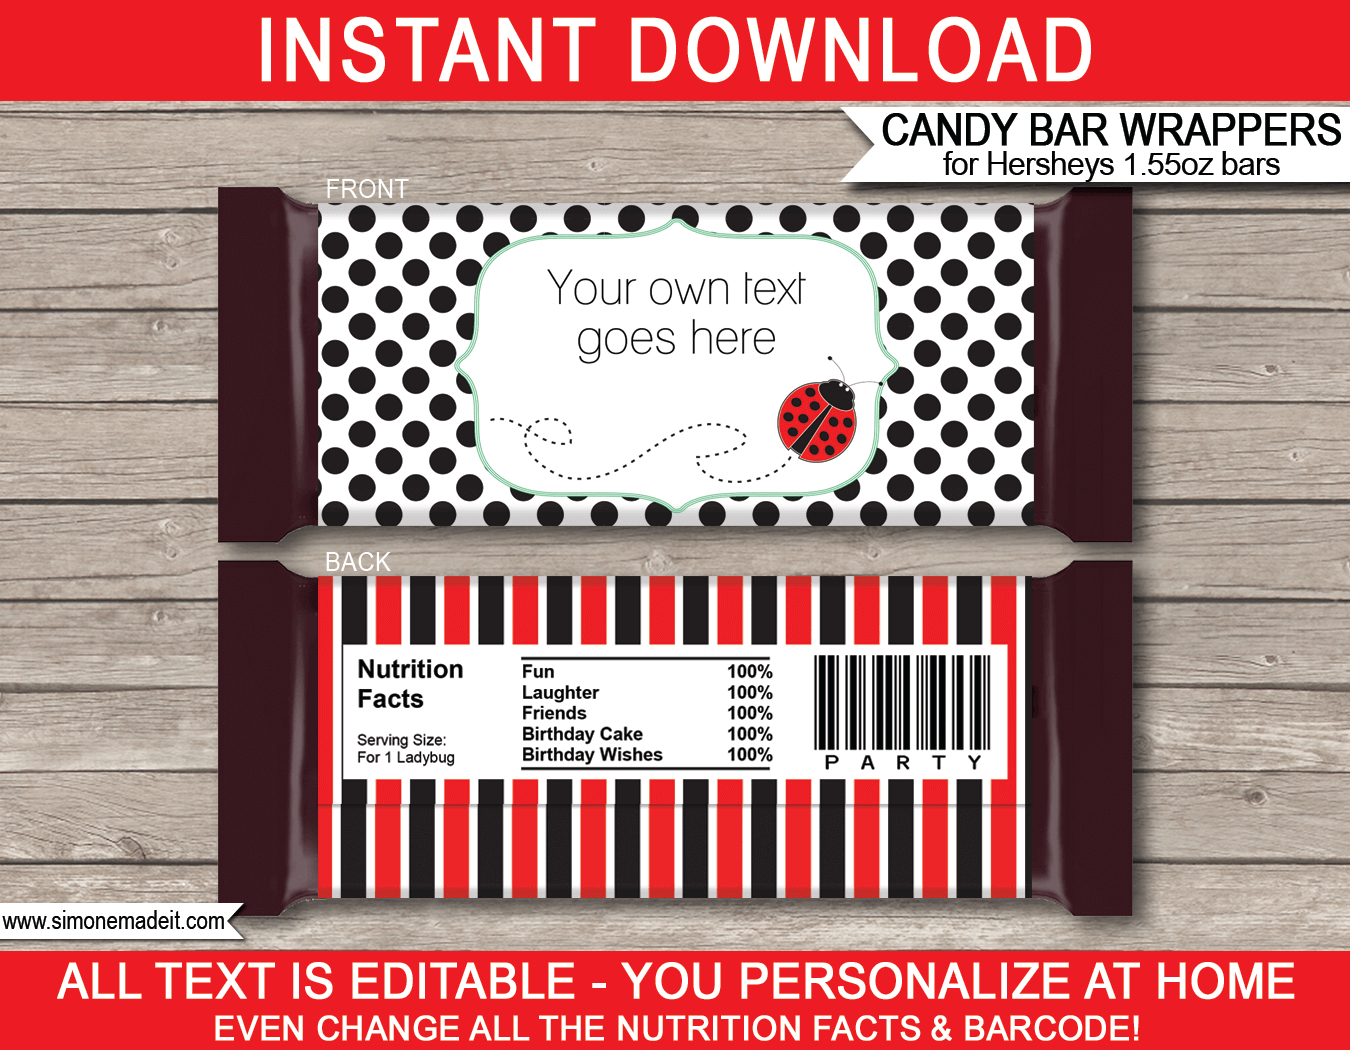 Ladybug Hershey Candy Bar Wrappers  Personalized Candy Bars Intended For Hershey Labels Template